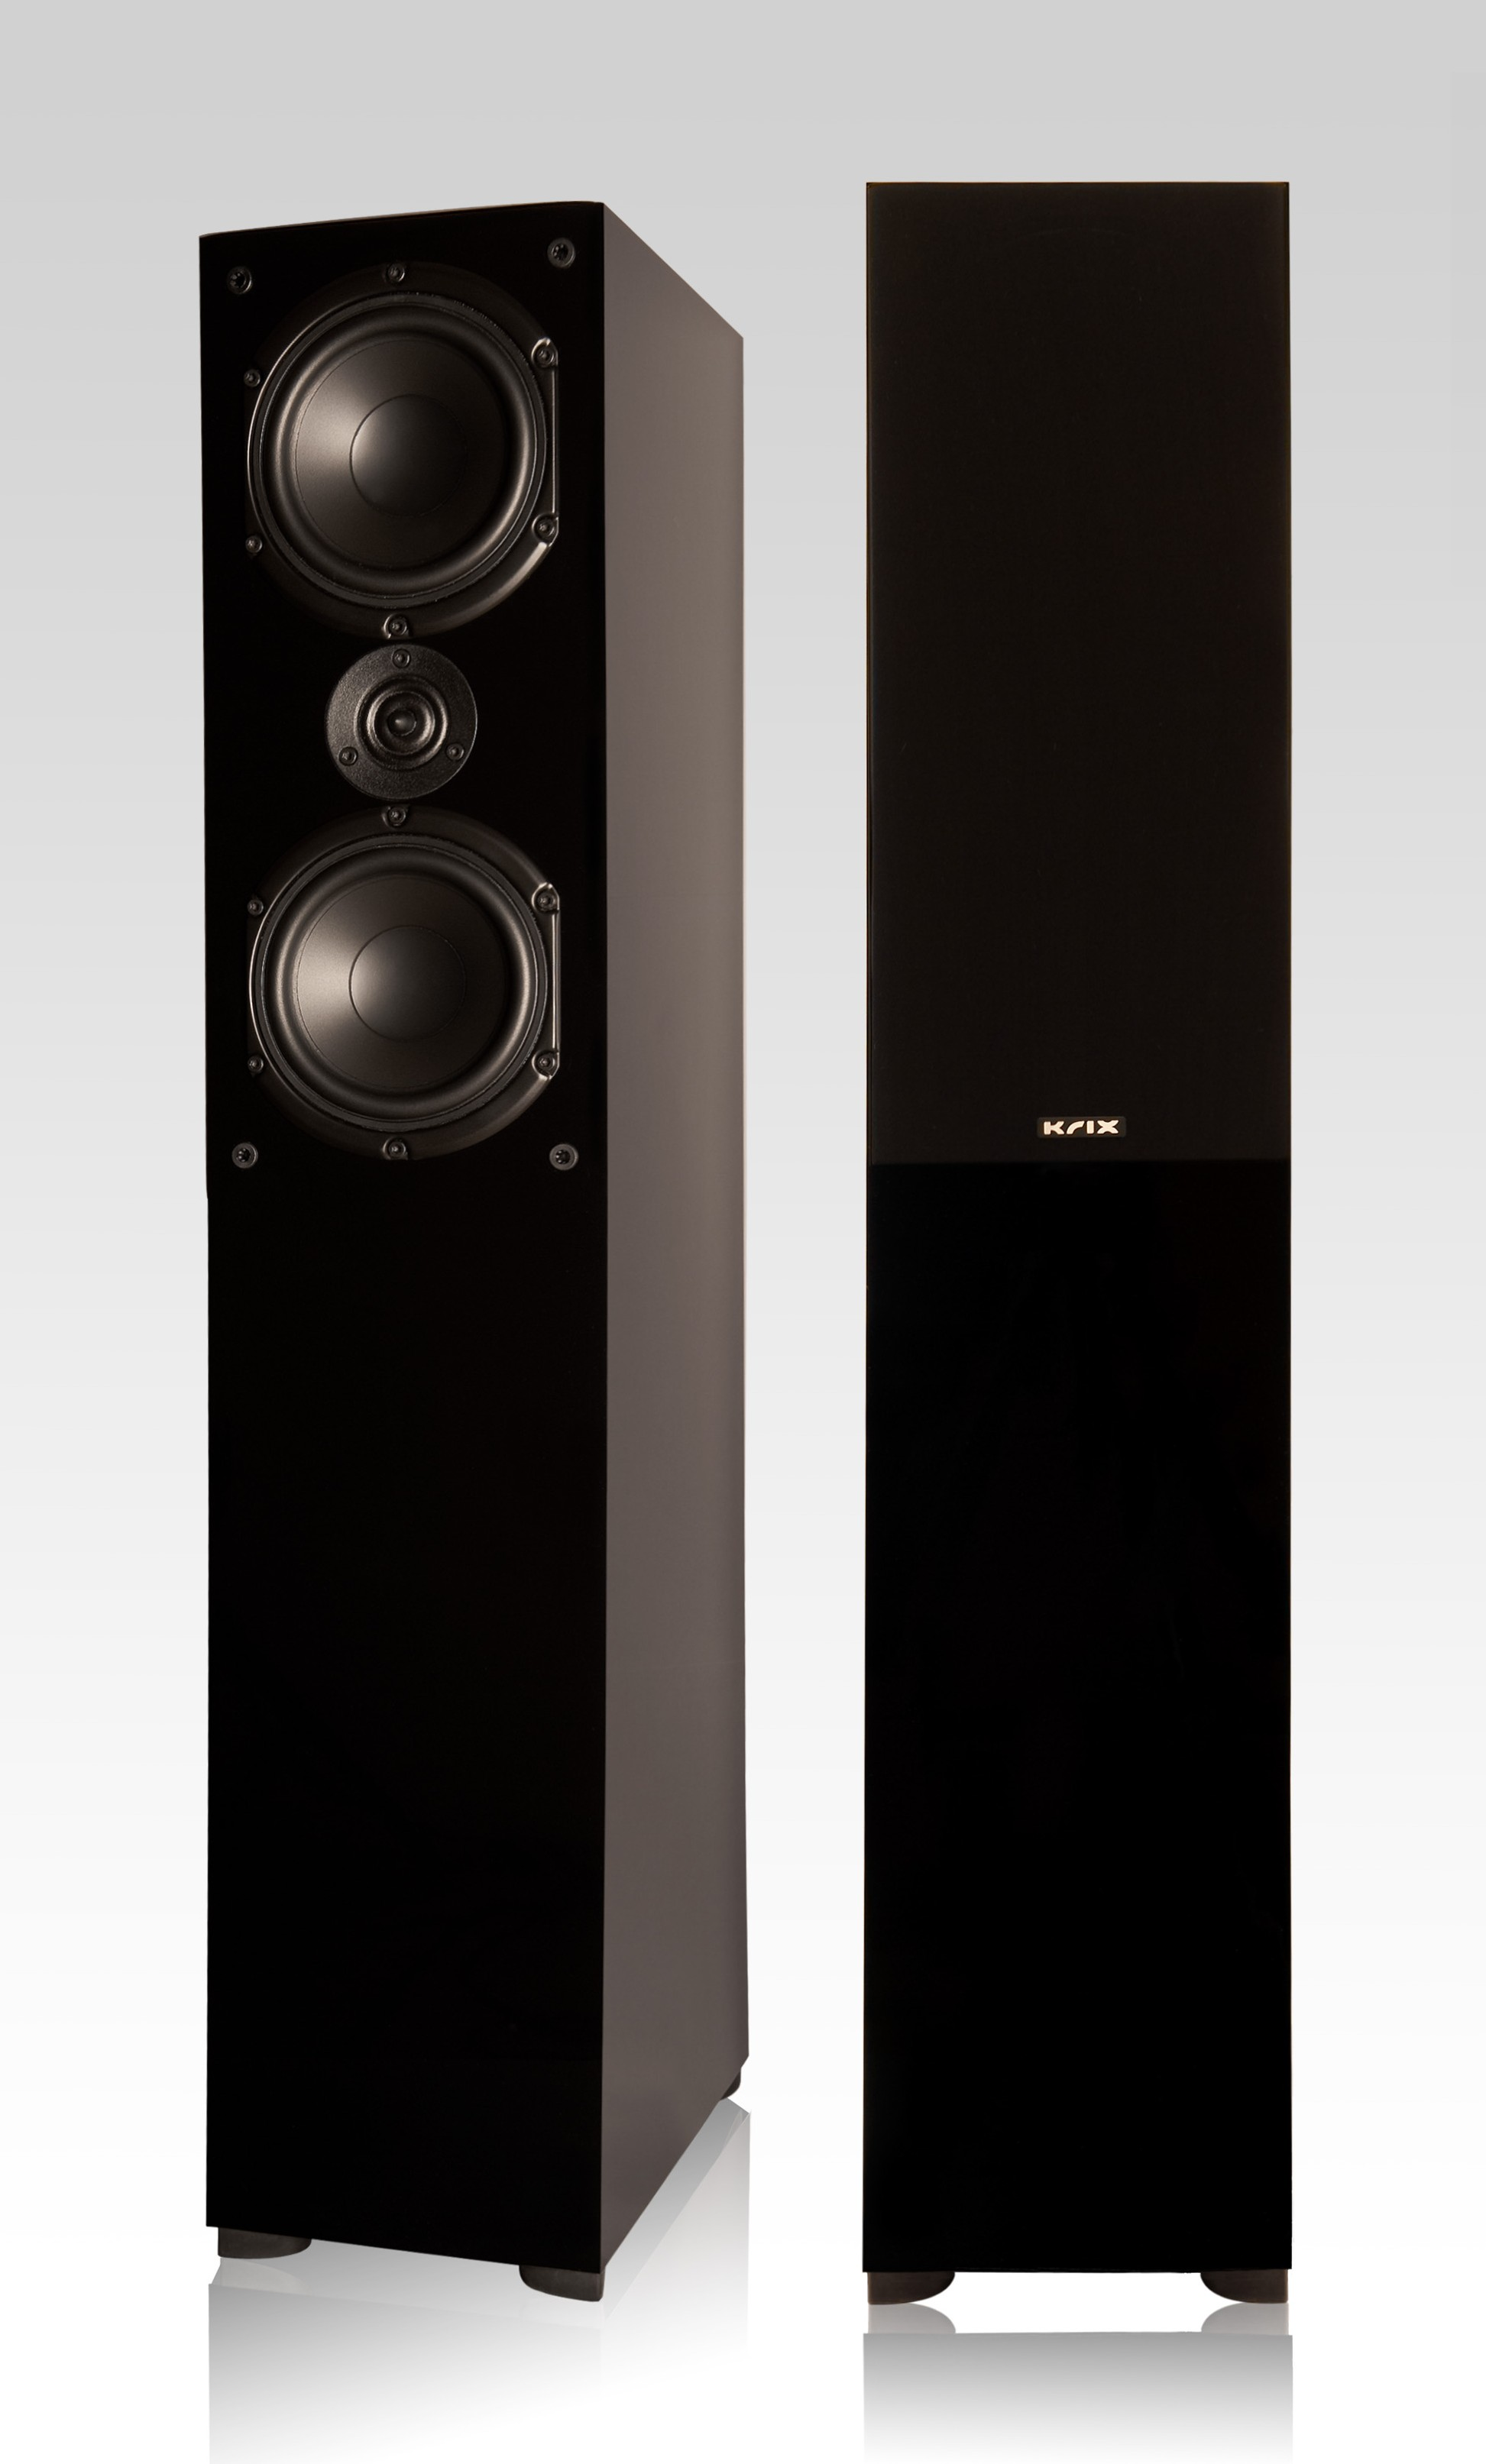 Krix Rhythmix floorstanding speaker for home theatre or stereo